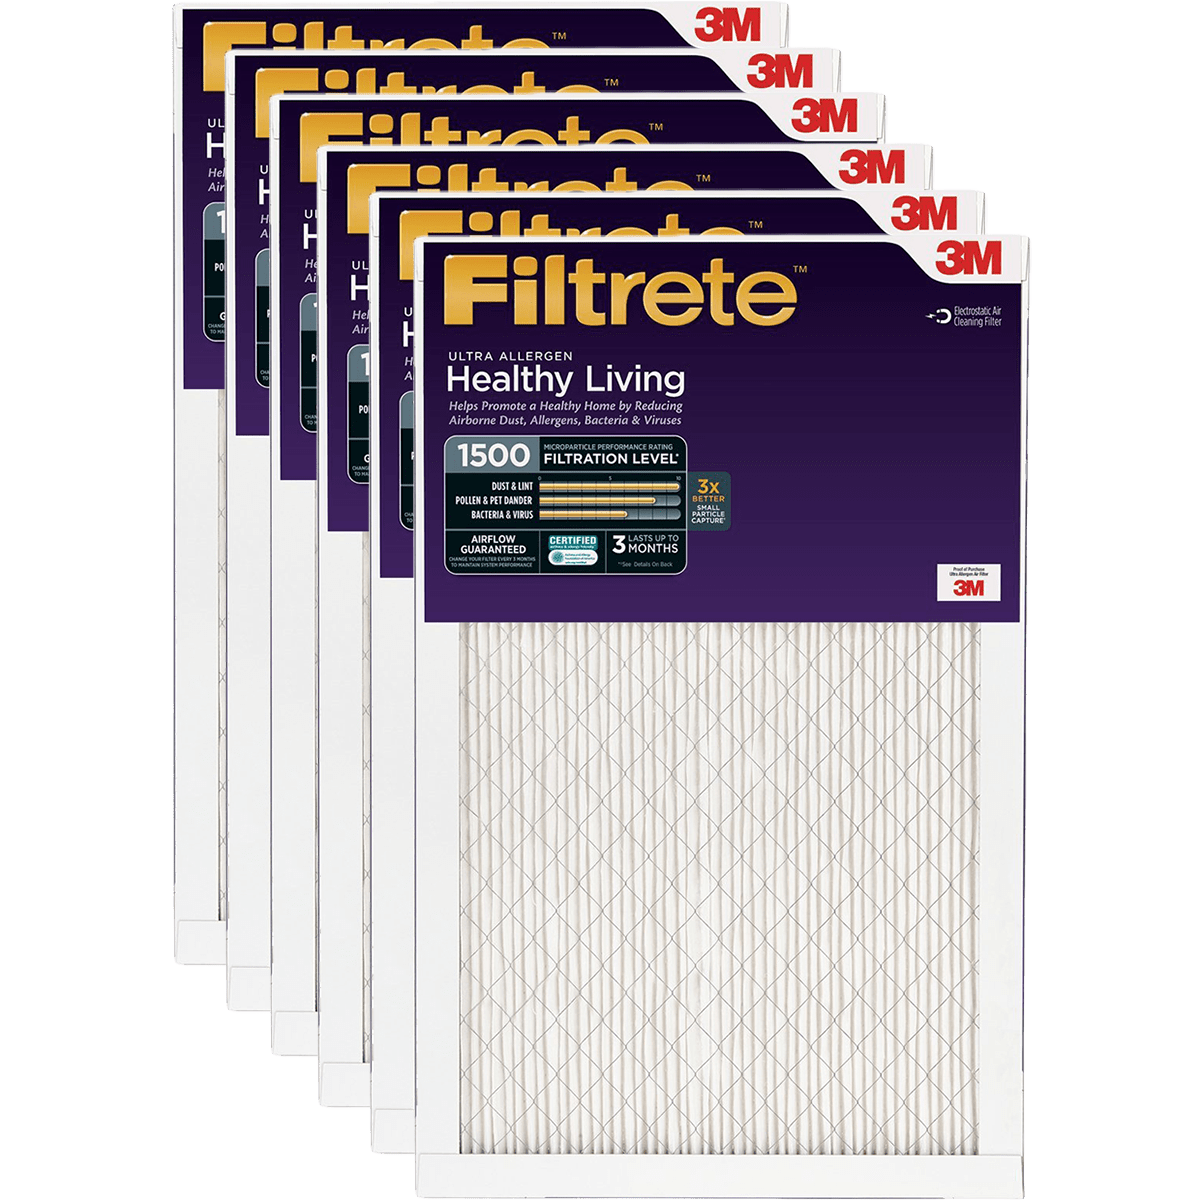 3M Filtrete Healthy Living 1500 MPR Ultra Allergen Reduction Filters, 1 Inch fi5353